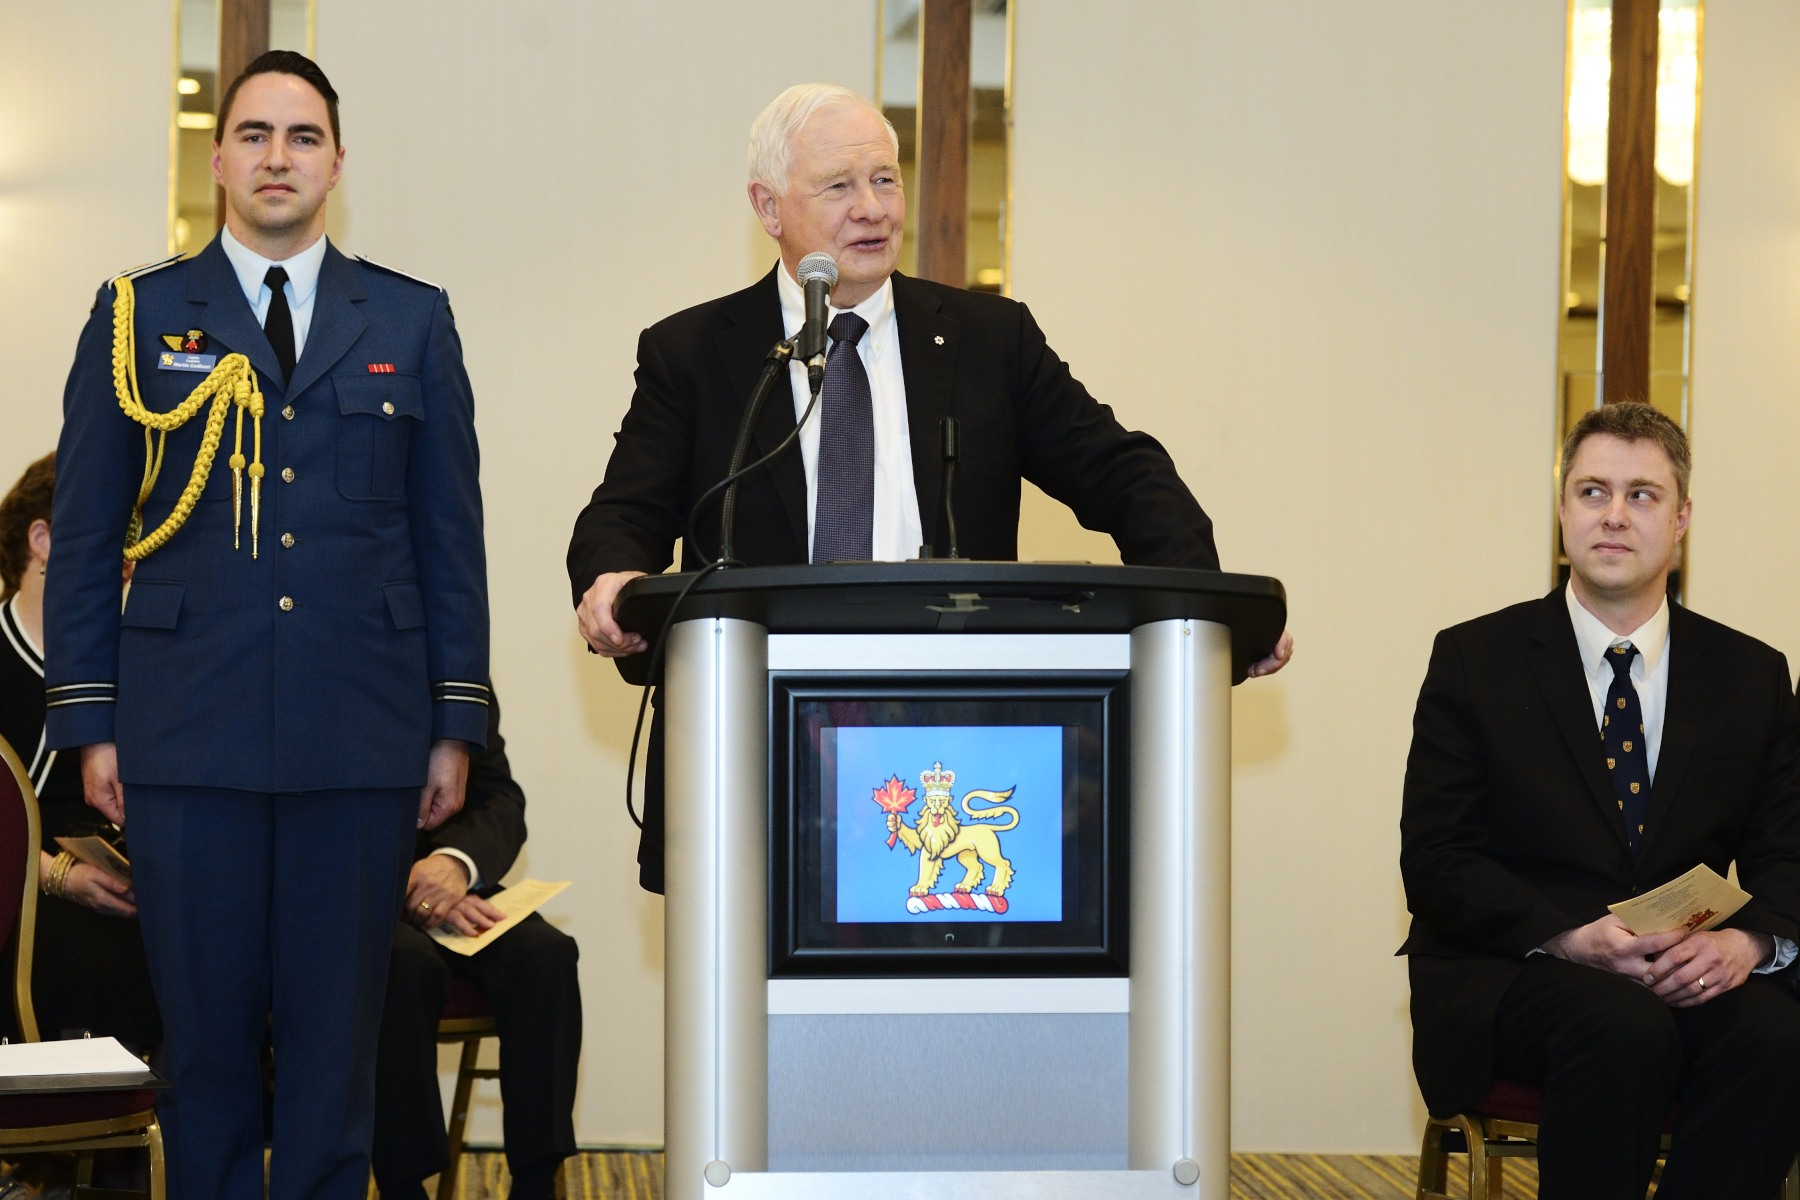 Their Excellencies then attended a celebration hosted by the Monarchist League of Canada in honour of Her Majesty's 90th Birthday. His Excellency delivered remarks to convey best wishes to The Queen on behalf of Canadians.